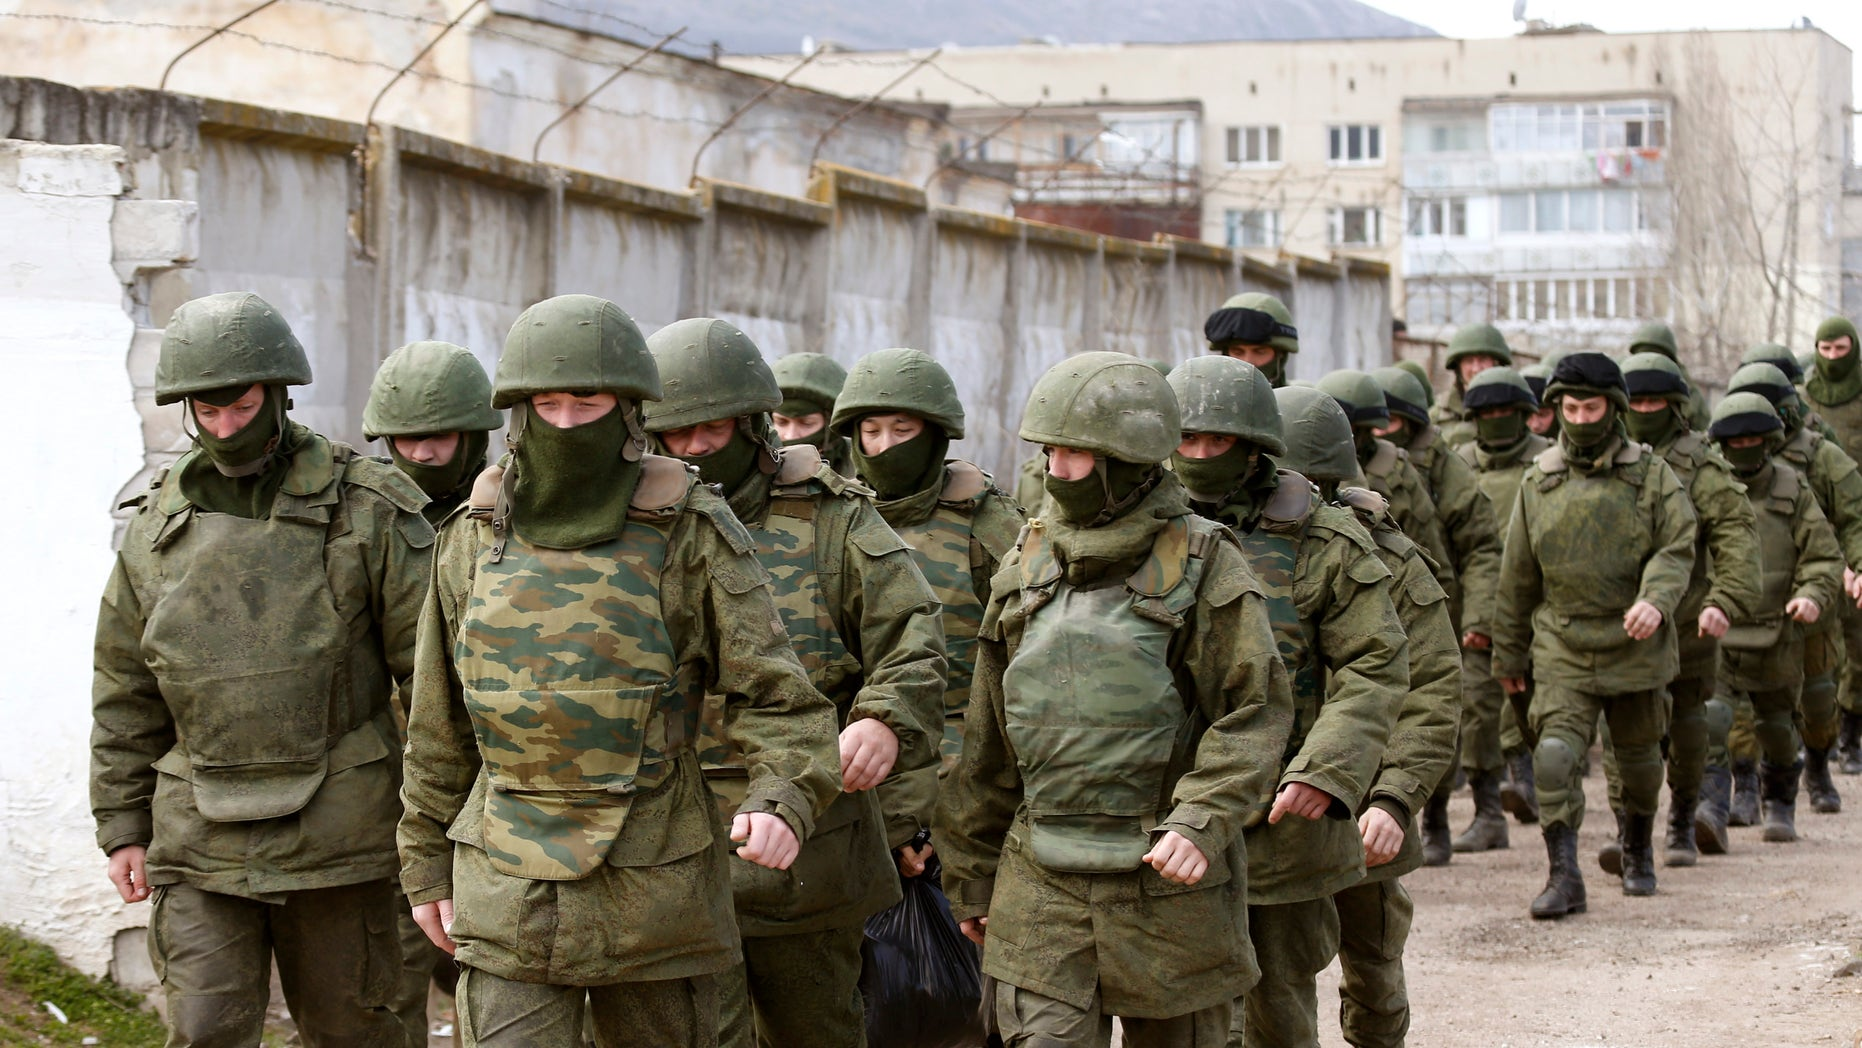 March 14, 2014 - Armed men, believed to be Russian servicemen, walk outside a Ukrainian military base in Perevalnoye, near the Crimean city of Simferopol. A Russian warship unloaded trucks, troops and at least one armored personnel carrier at a bay near Sevastopol in Crimea on Friday morning, as Moscow continued to build up its forces on the Ukrainian peninsula.  REUTERS